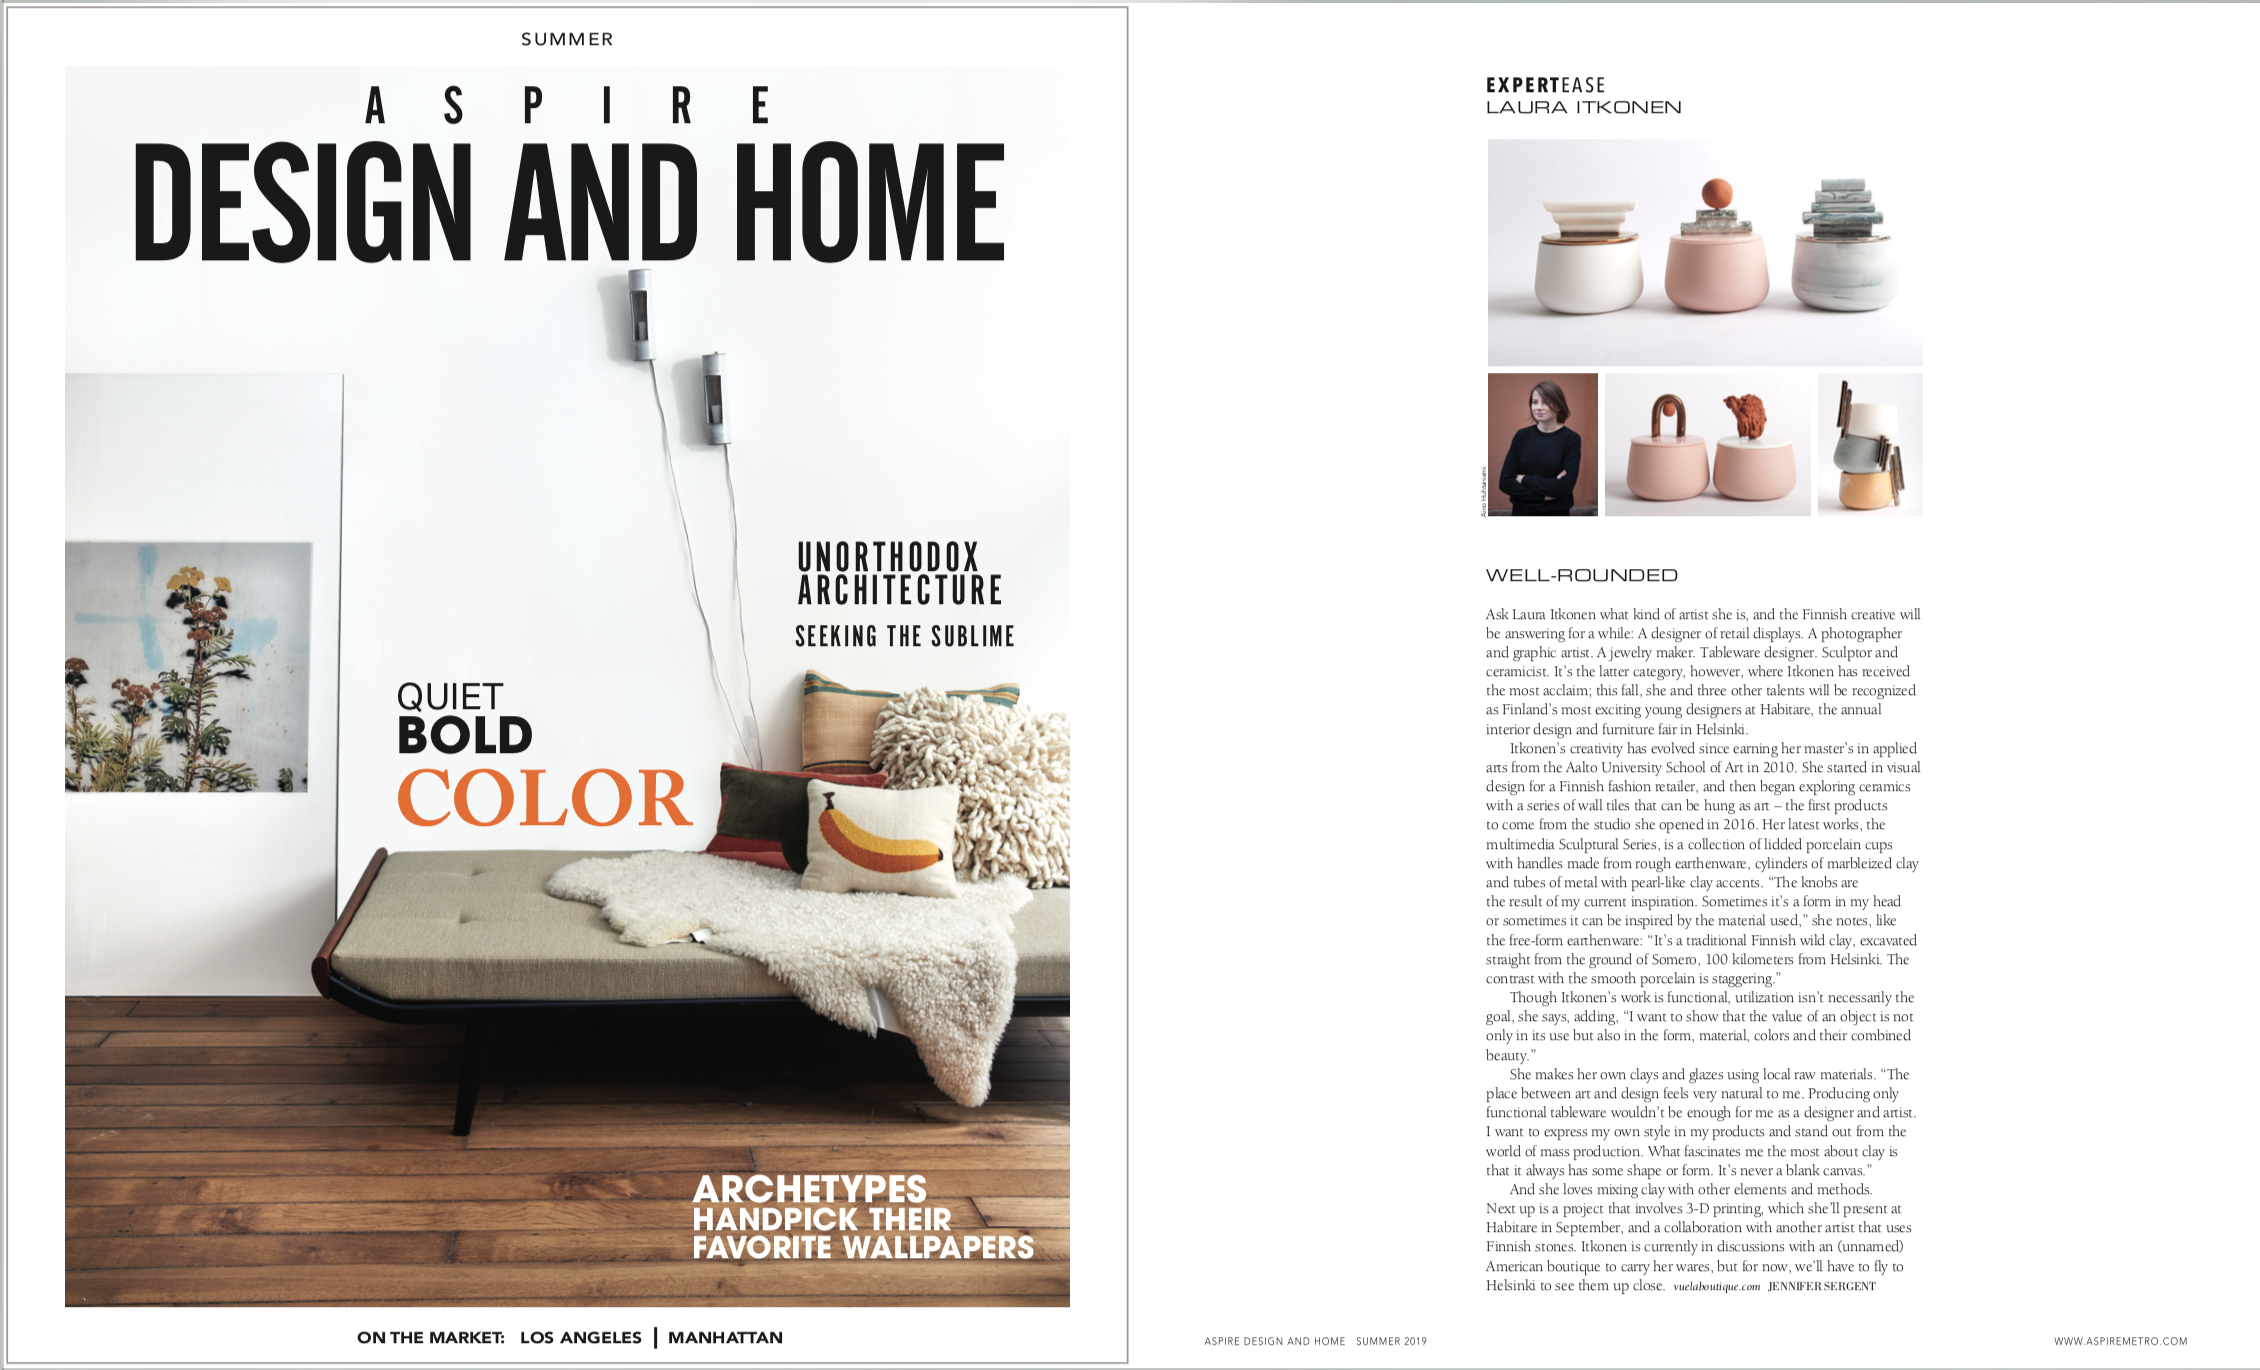 aspiredesignandhome_article_lauraitkonen.png